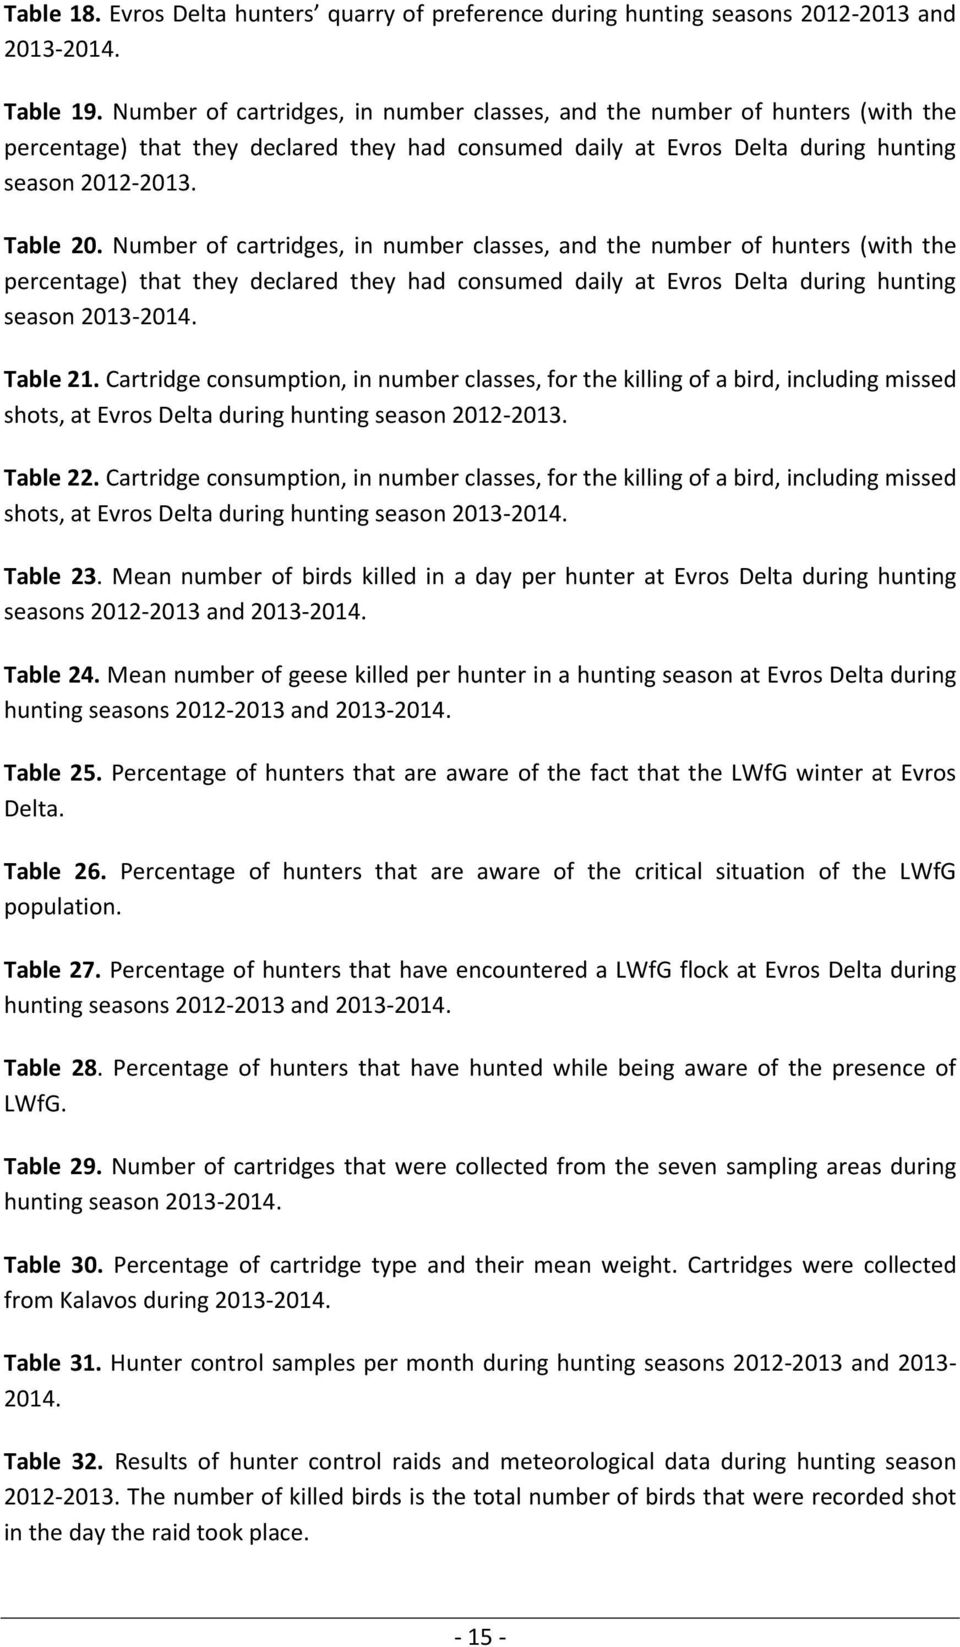 Number of cartridges, in number classes, and the number of hunters (with the percentage) that they declared they had consumed daily at Evros Delta during hunting season 2013-2014. Table 21.